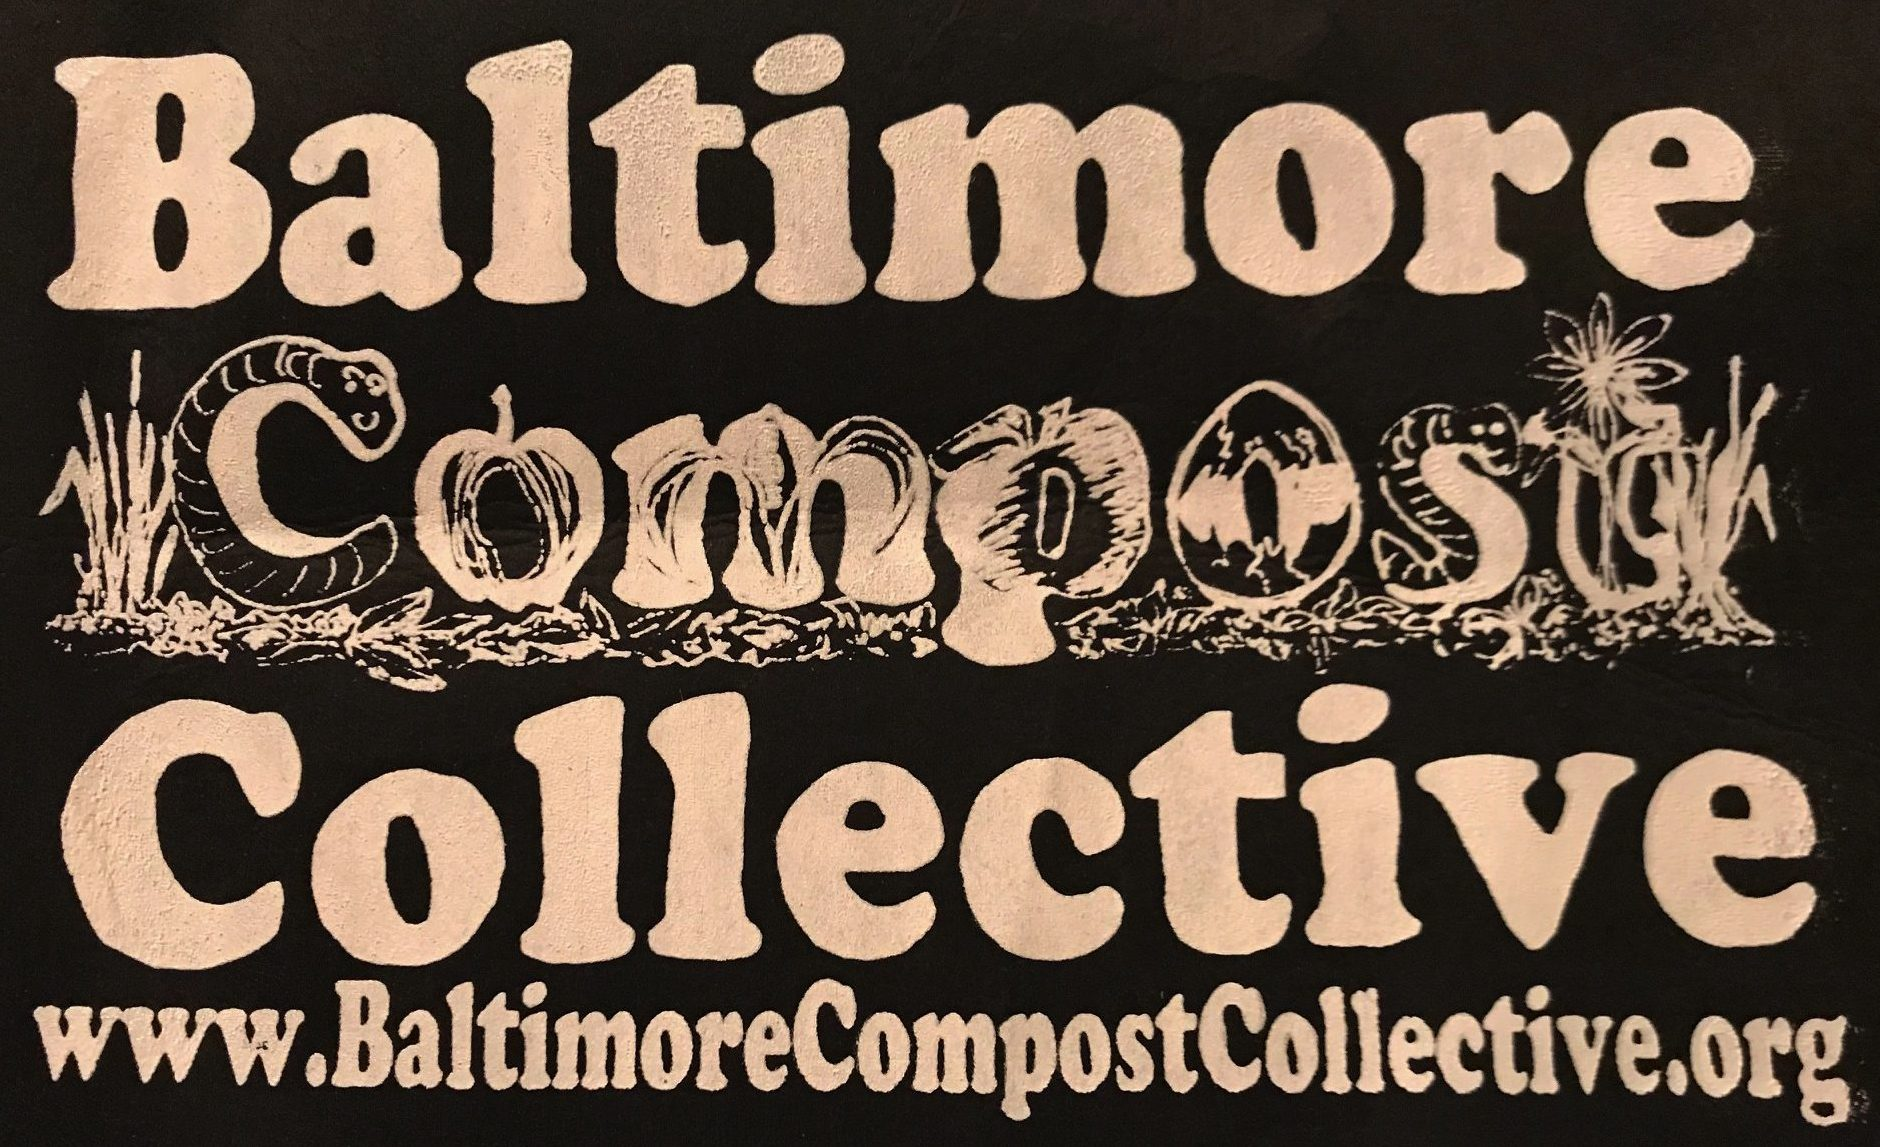 Baltimore Compost Collective